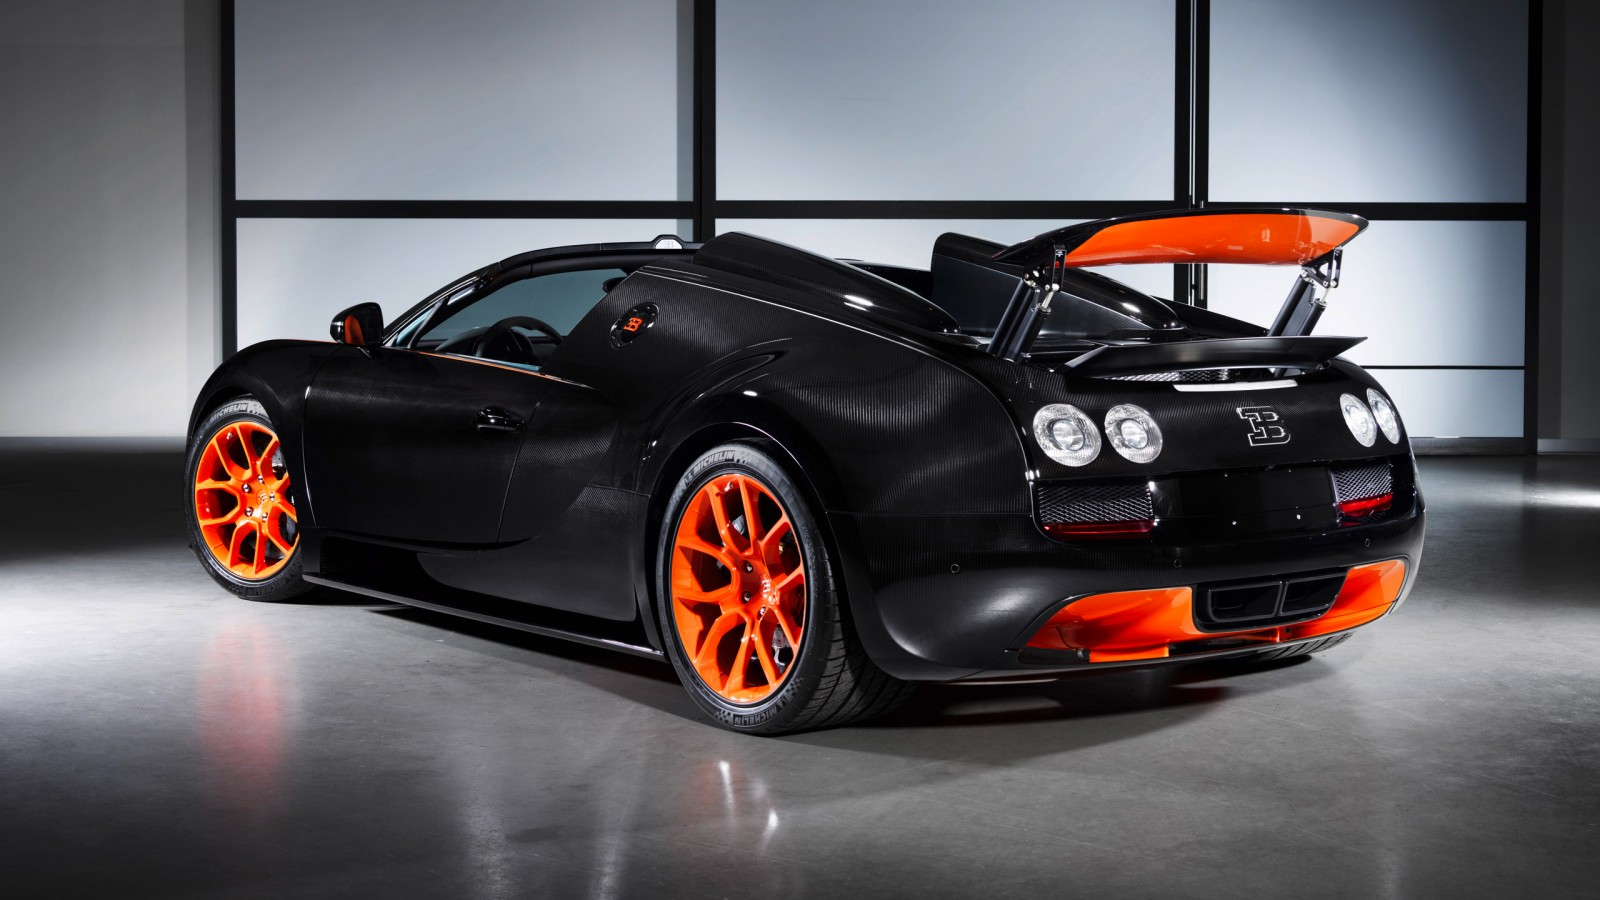 2013 bugatti veyron 16 4 grand sport vitesse world speed record 3 wallpaper hd car wallpapers. Black Bedroom Furniture Sets. Home Design Ideas